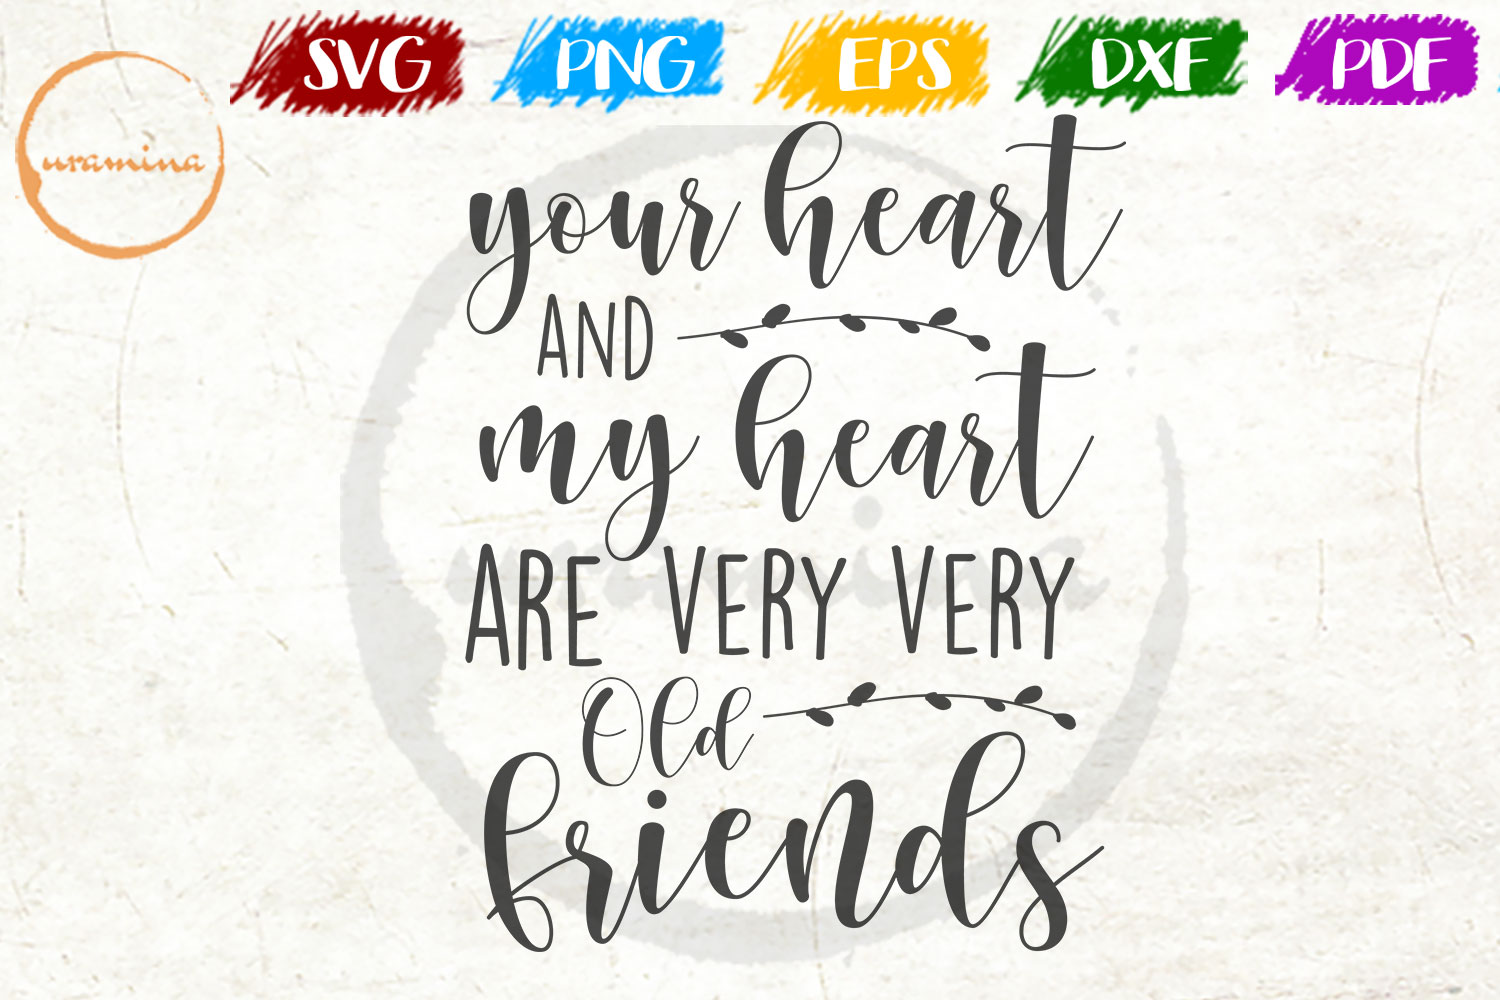 Download Free Your Heart And My Heart Are Very Very Graphic By Uramina Creative Fabrica for Cricut Explore, Silhouette and other cutting machines.